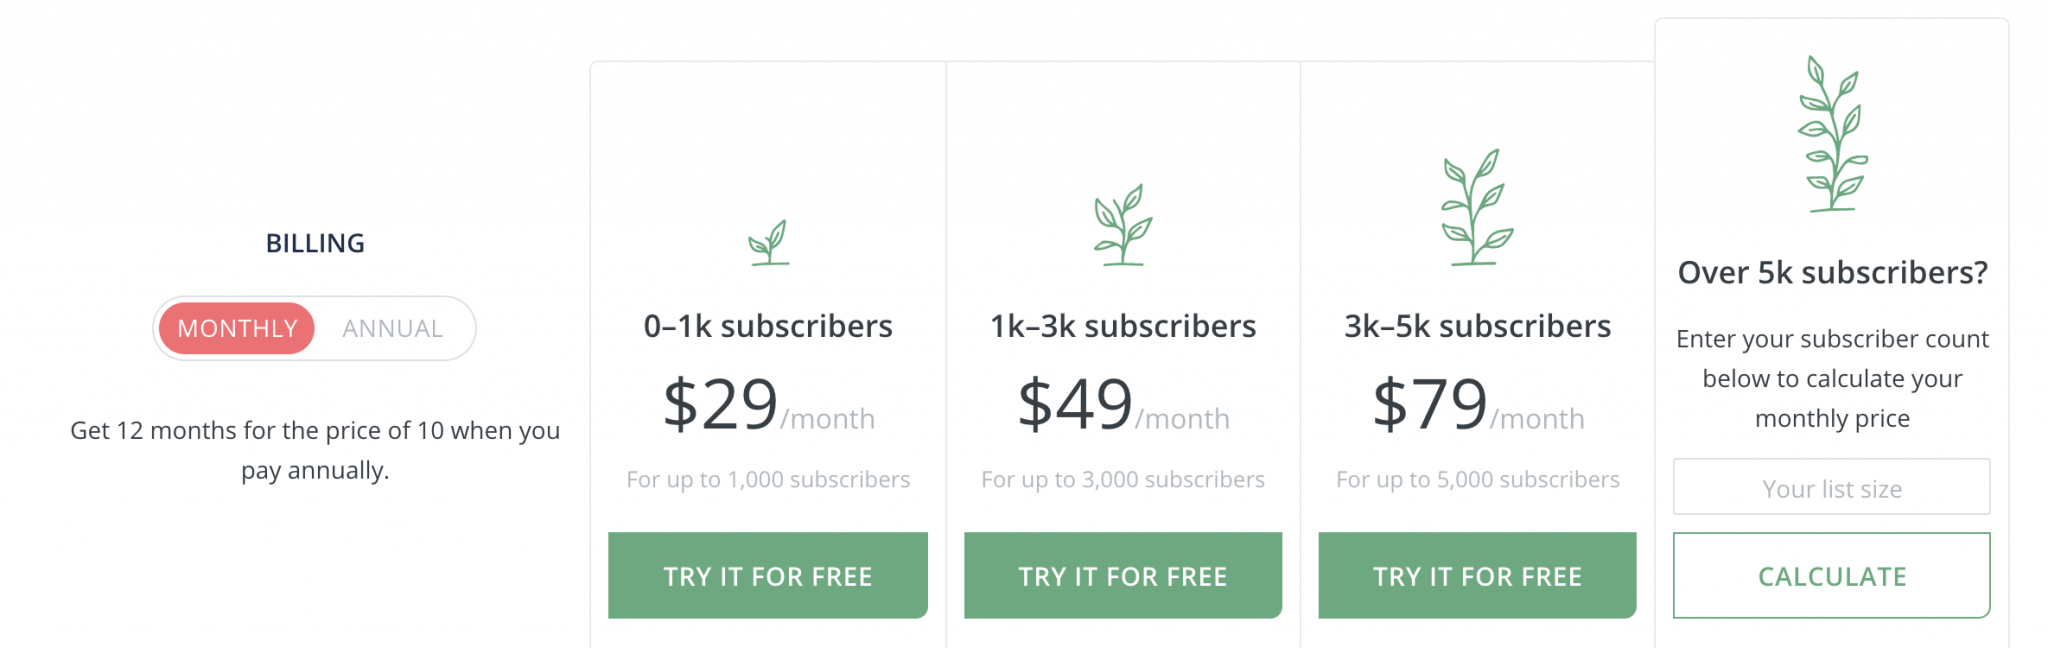 Promo Codes Convertkit May 2020